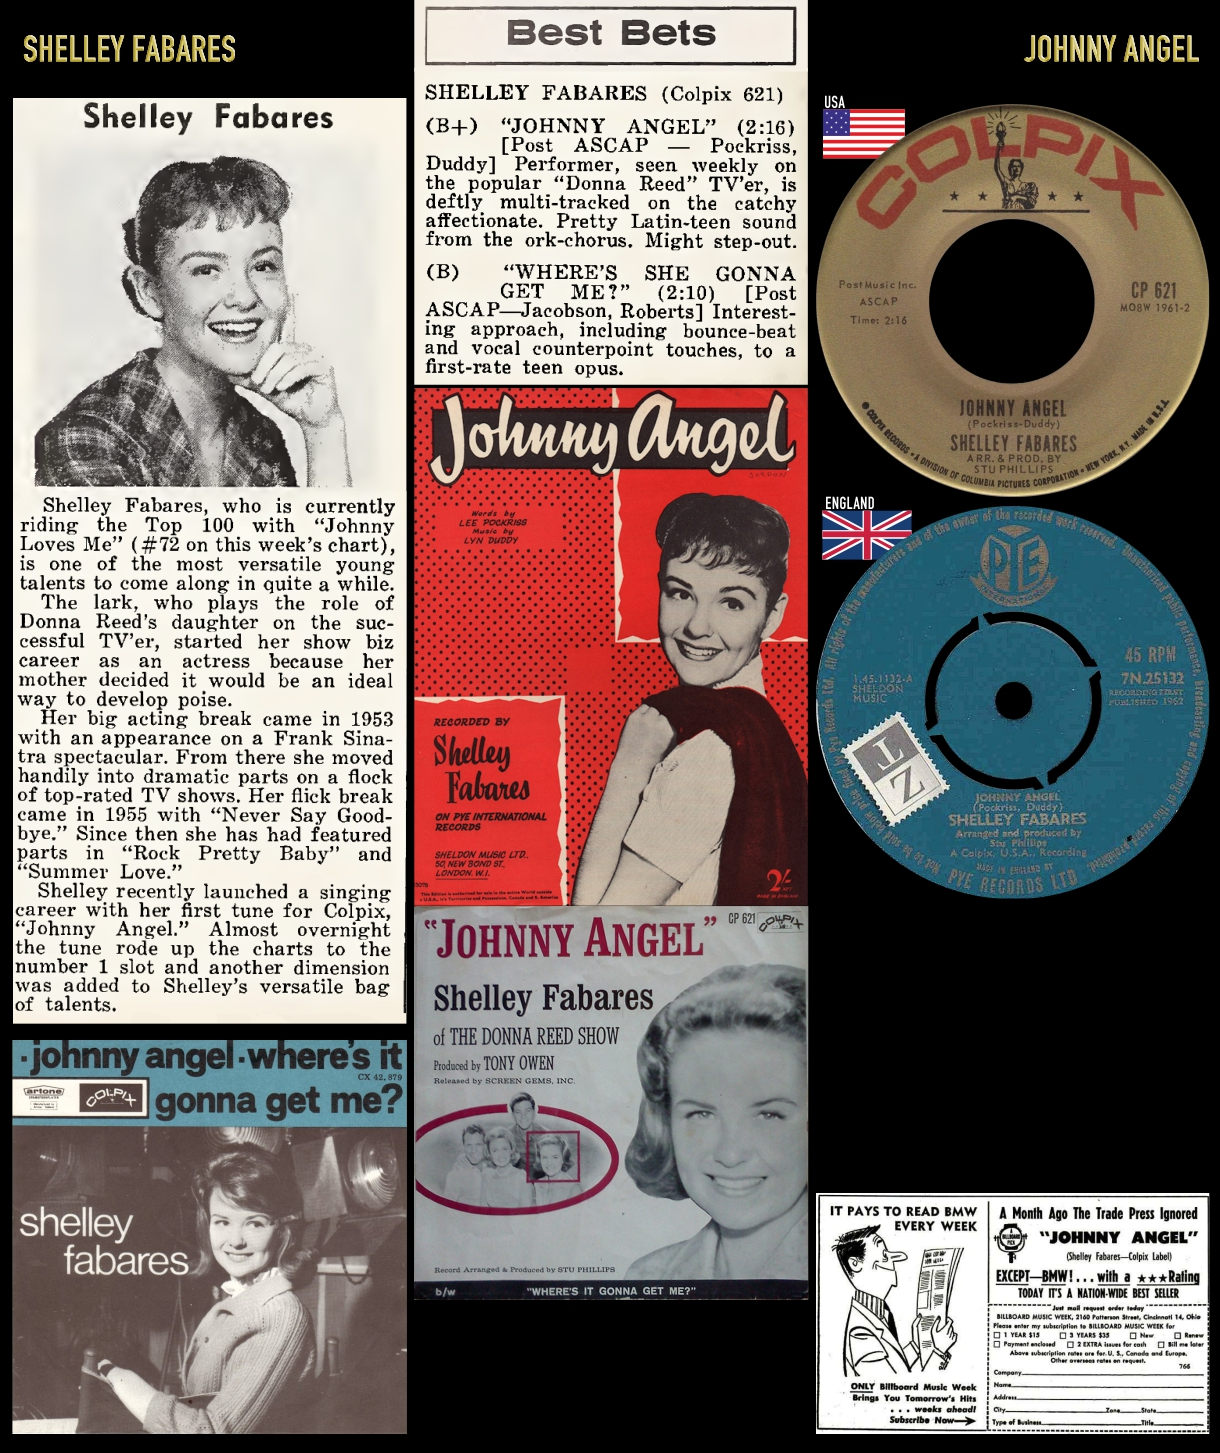 620303_Shelley Fabares_Johnny Angel